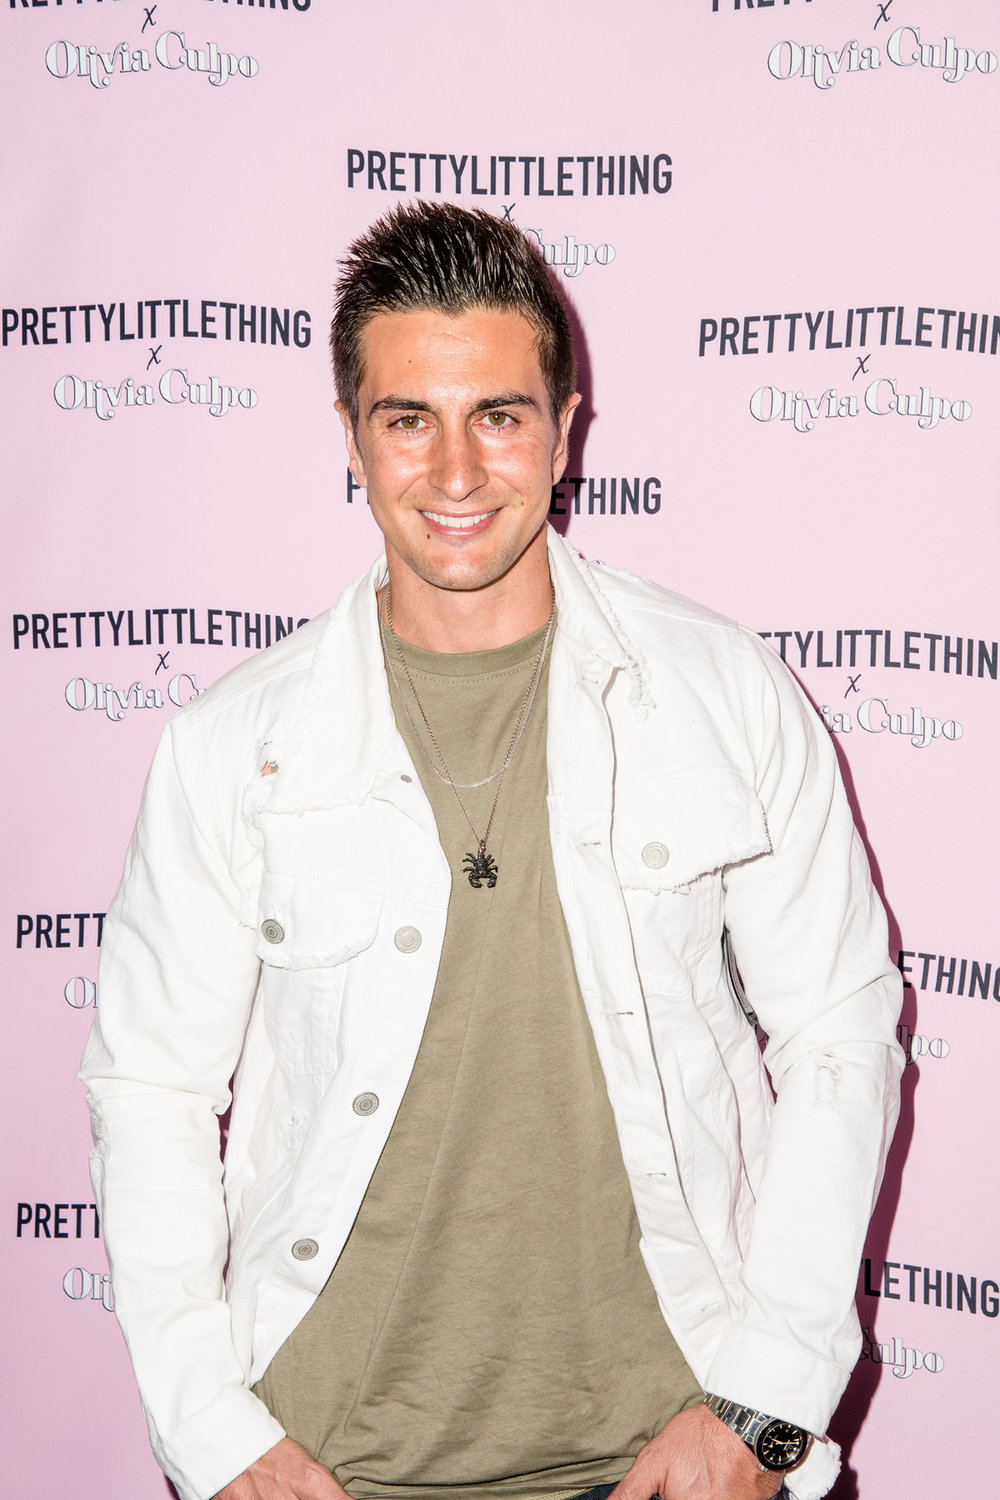 PrettyLittleThing PLT X Olivia Culpo Collection  Celebrity Launch Party Lee Kholofai.jpg